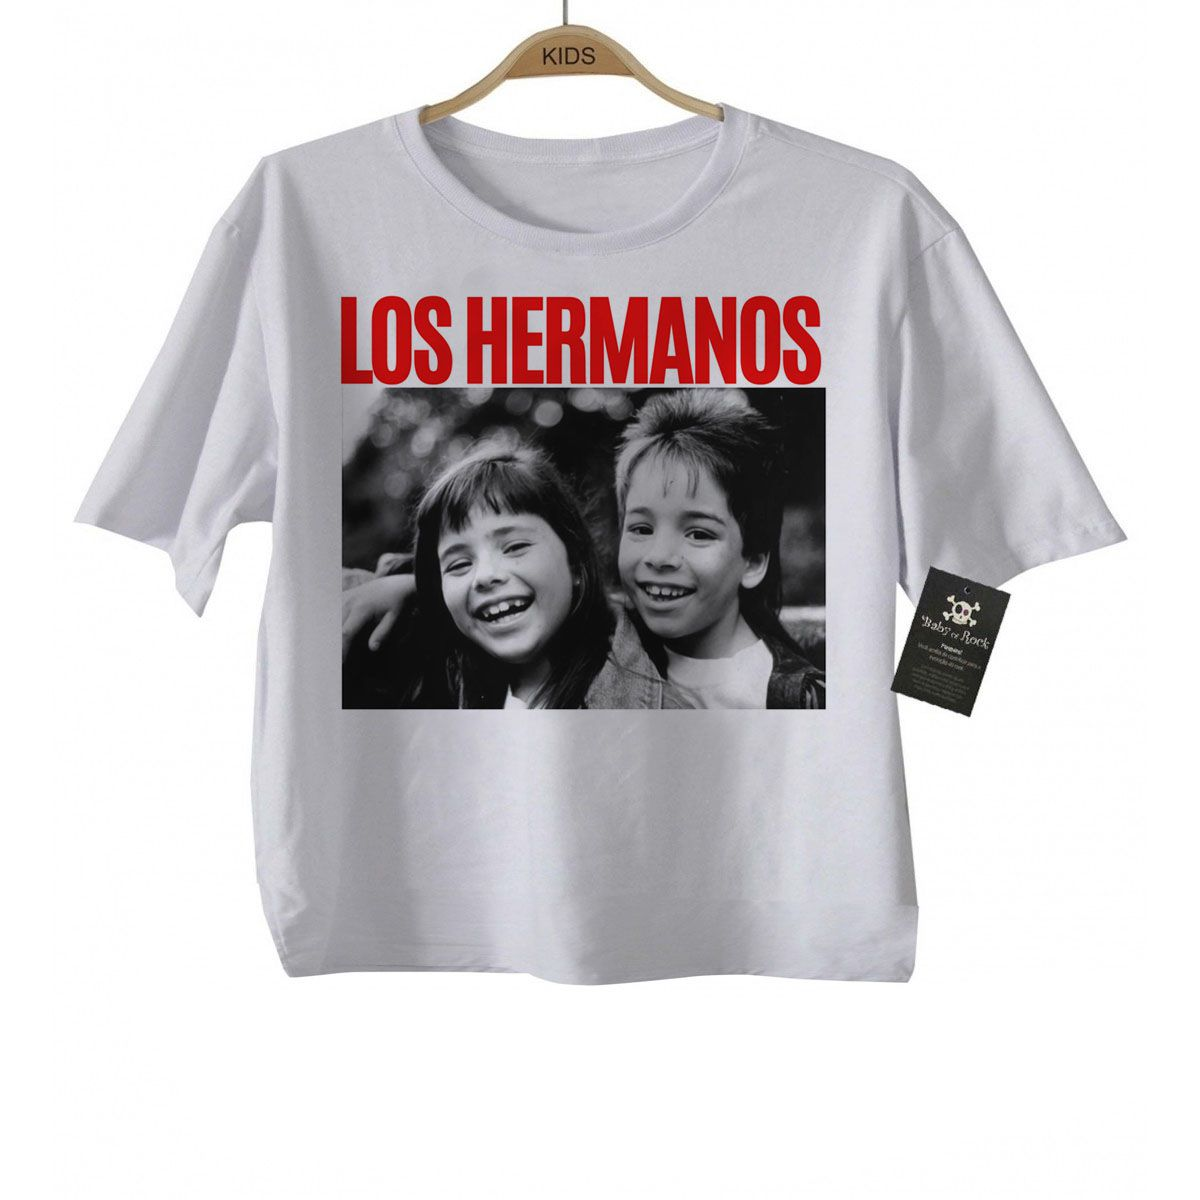 Camiseta Infantil Sertanejo Sandy e Junior Los Hermanos - Baby Monster S/A